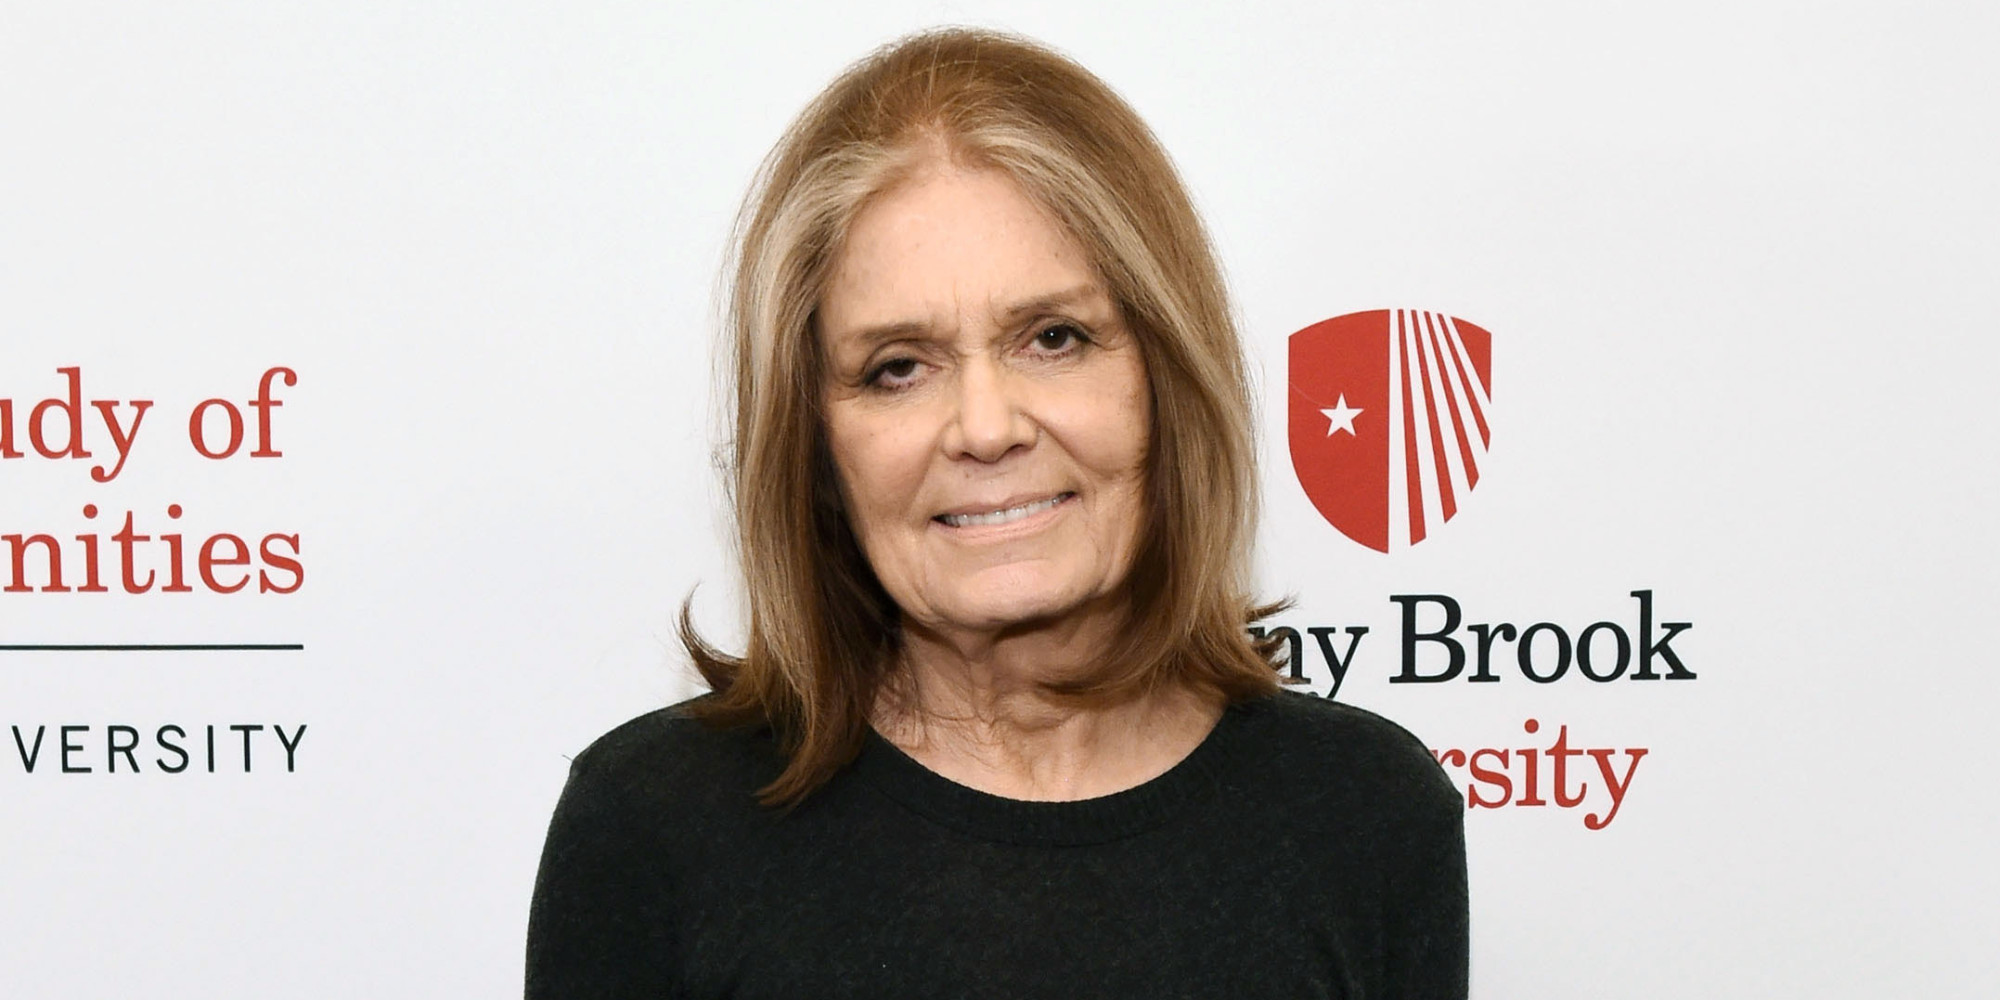 better and gloria steinem B orn in ohio, gloria steinem, 82, graduated in 1956 and became a writer by 1972, when she founded ms magazine , she was known as a political activist and feminist organiser.